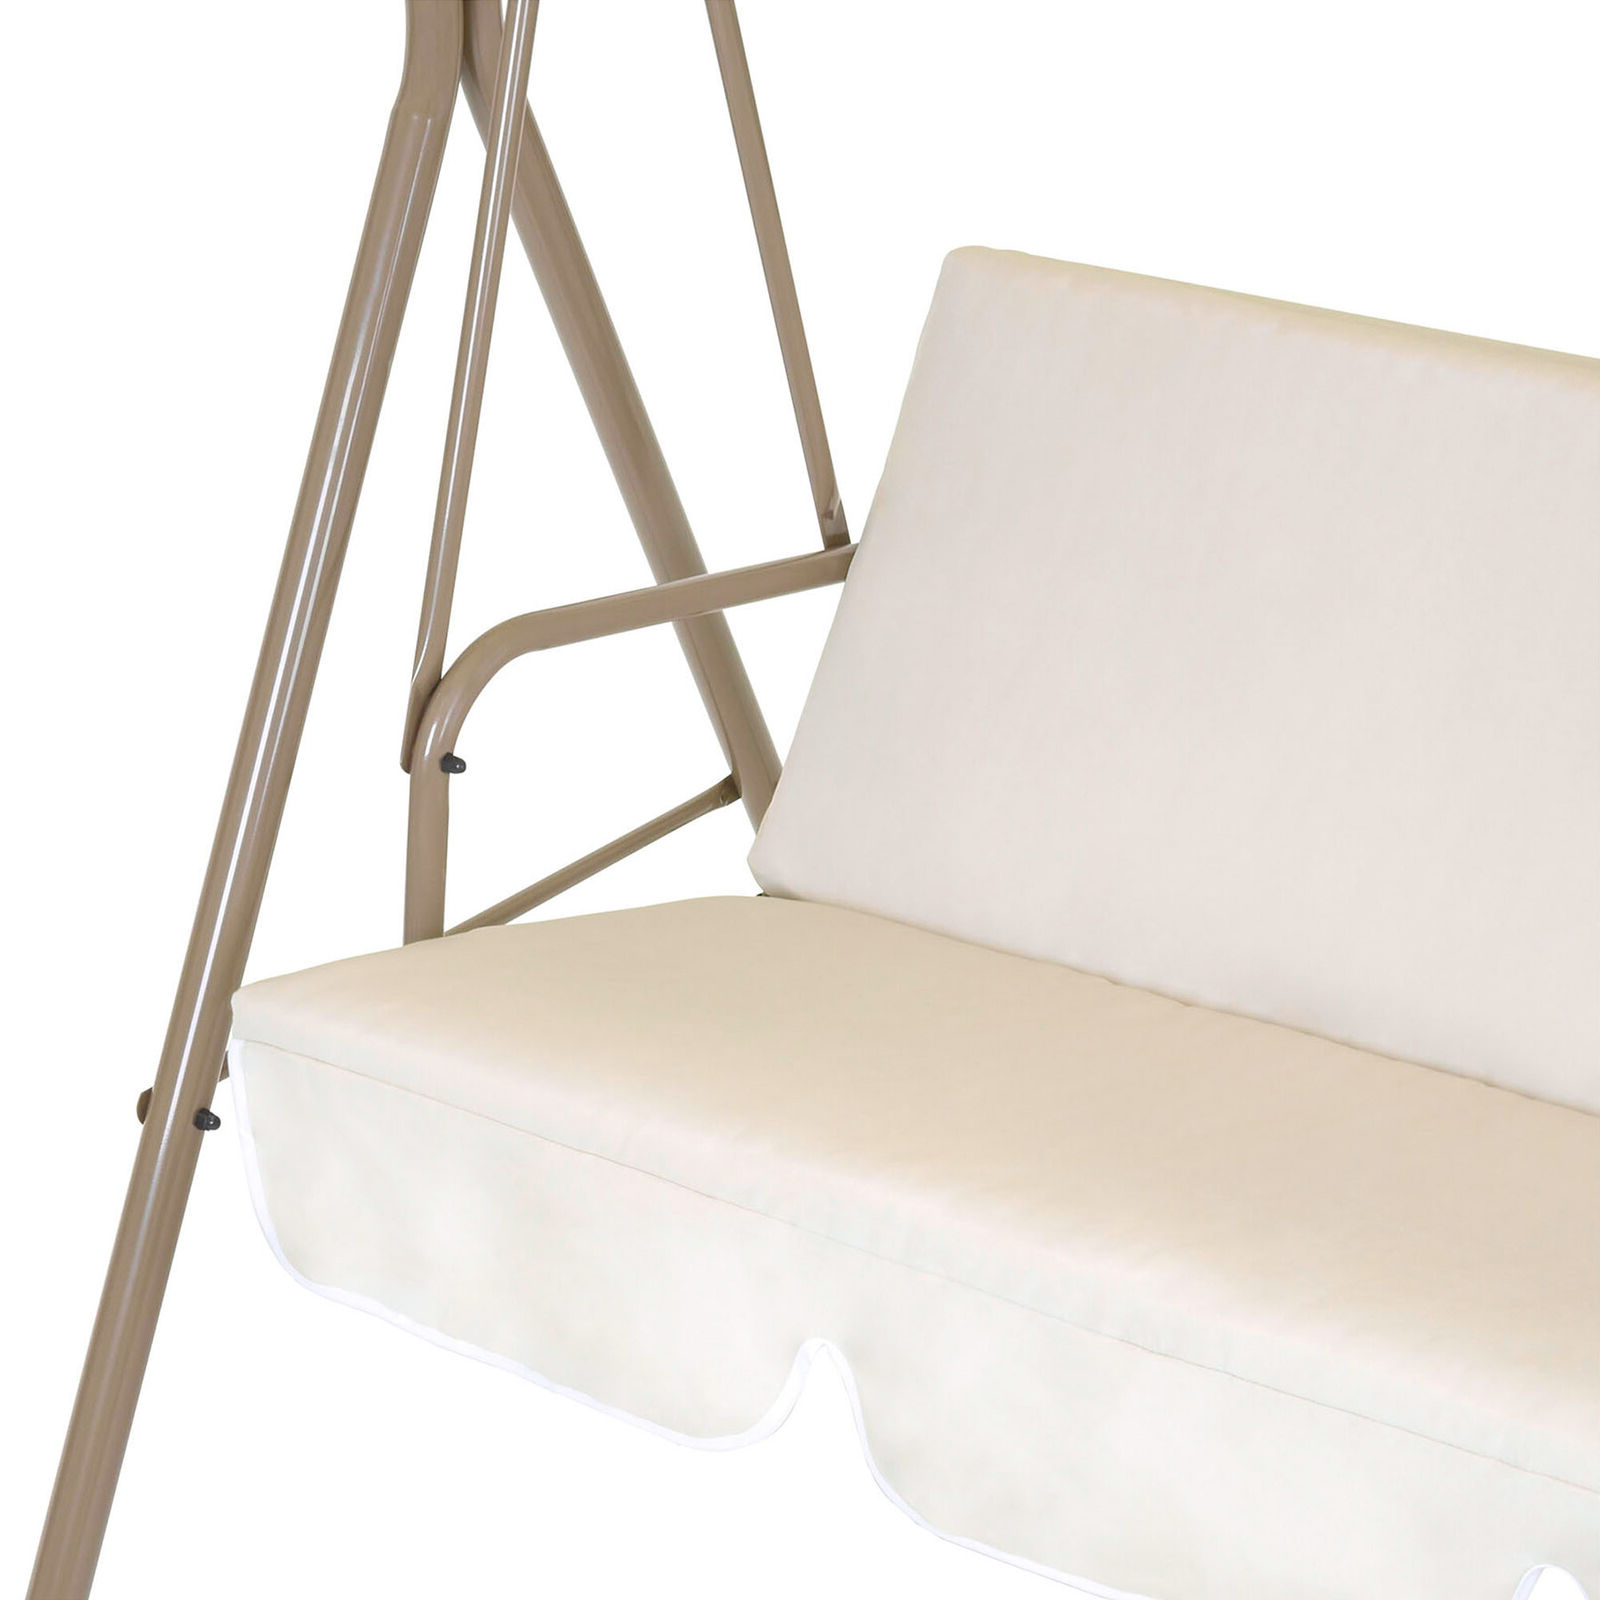 2 Person Outdoor Convertible Canopy Swing Gliders With Removable Cushions Beige Intended For Widely Used Bcp 2 Person Outdoor Canopy Swing Glider Furniture W/ Cushions, Steel Frame (View 8 of 25)